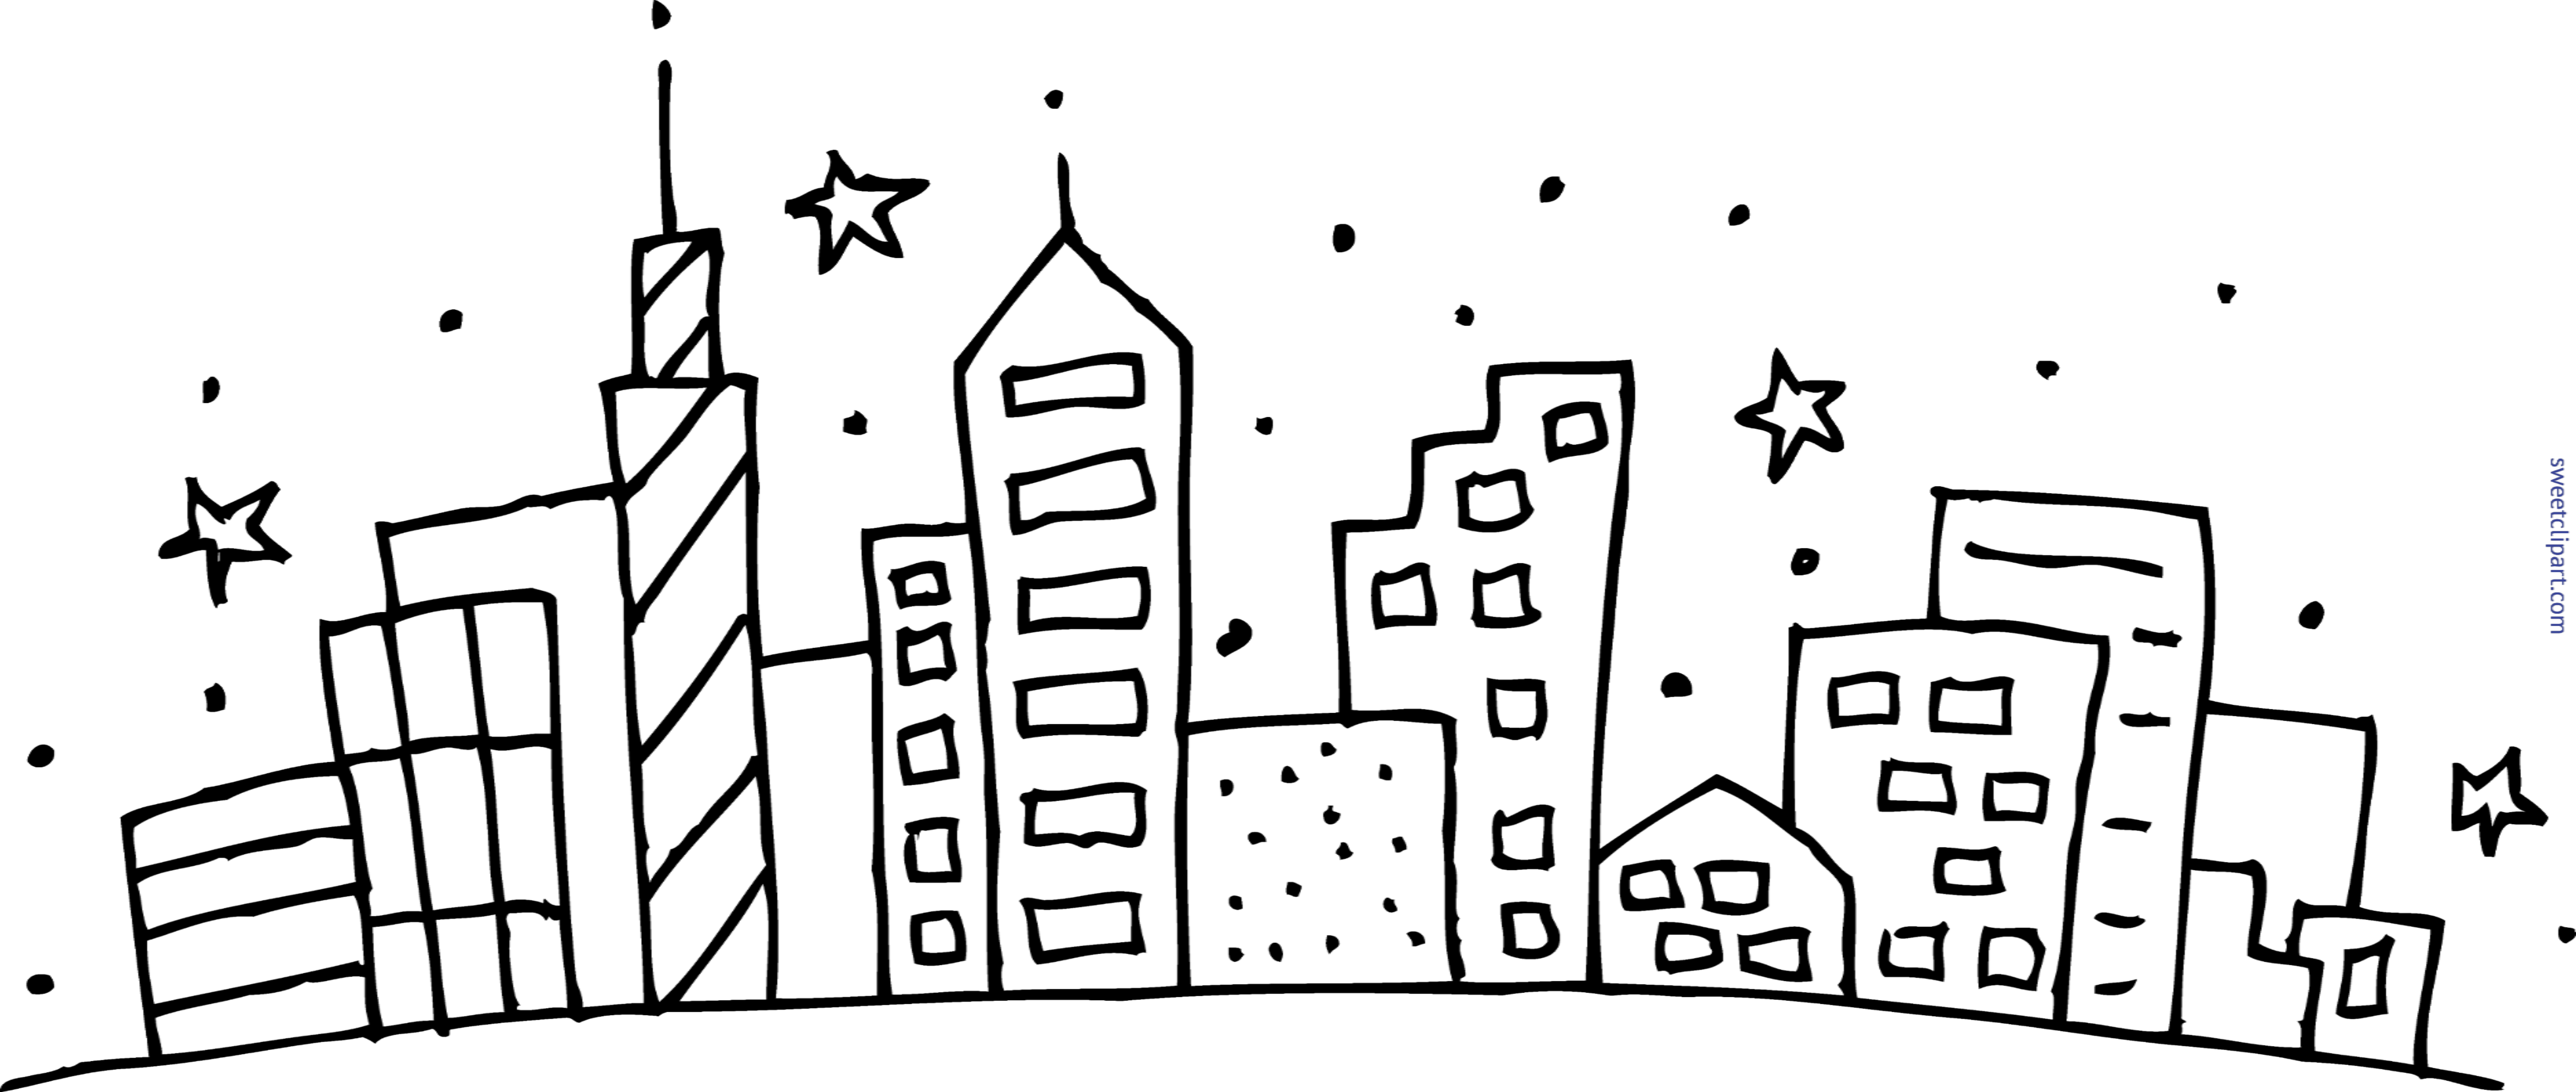 freeuse Cityscape clipart. Coloring page clip art